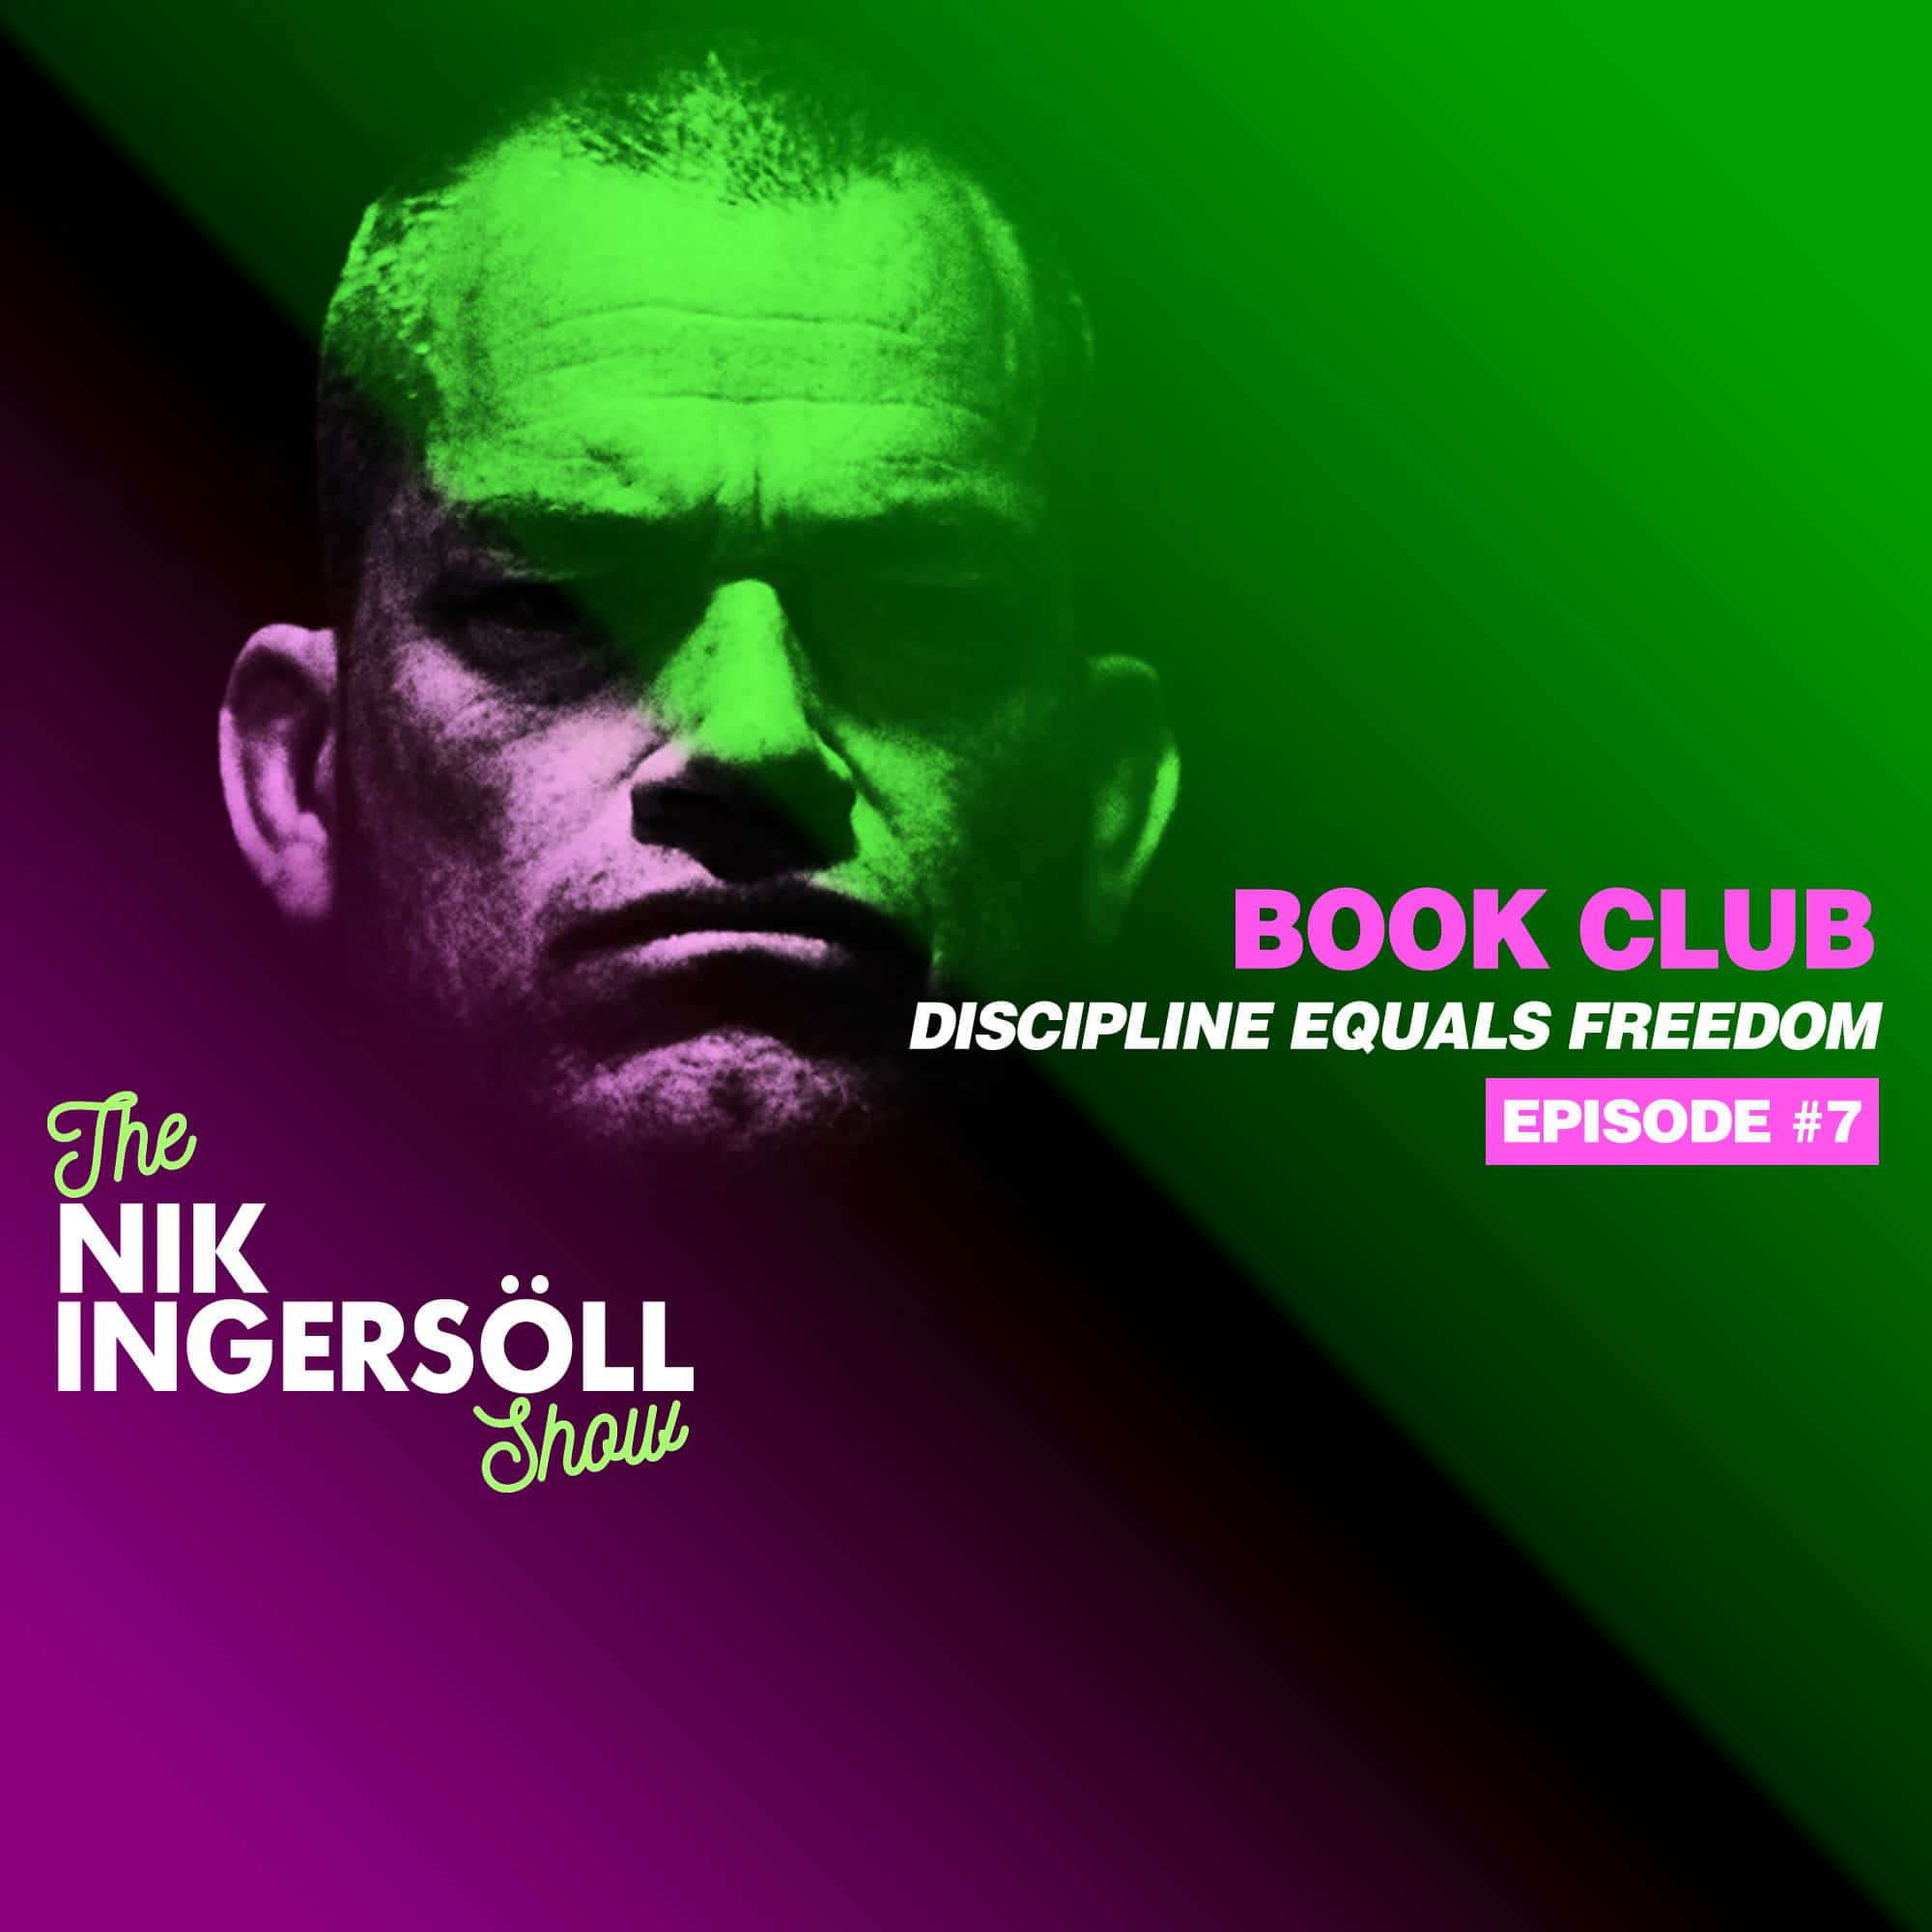 #7: BOOK CLUB – Jocko Willink – Discipline Equals Freedom (Podcast) The Nik Ingersoll Show